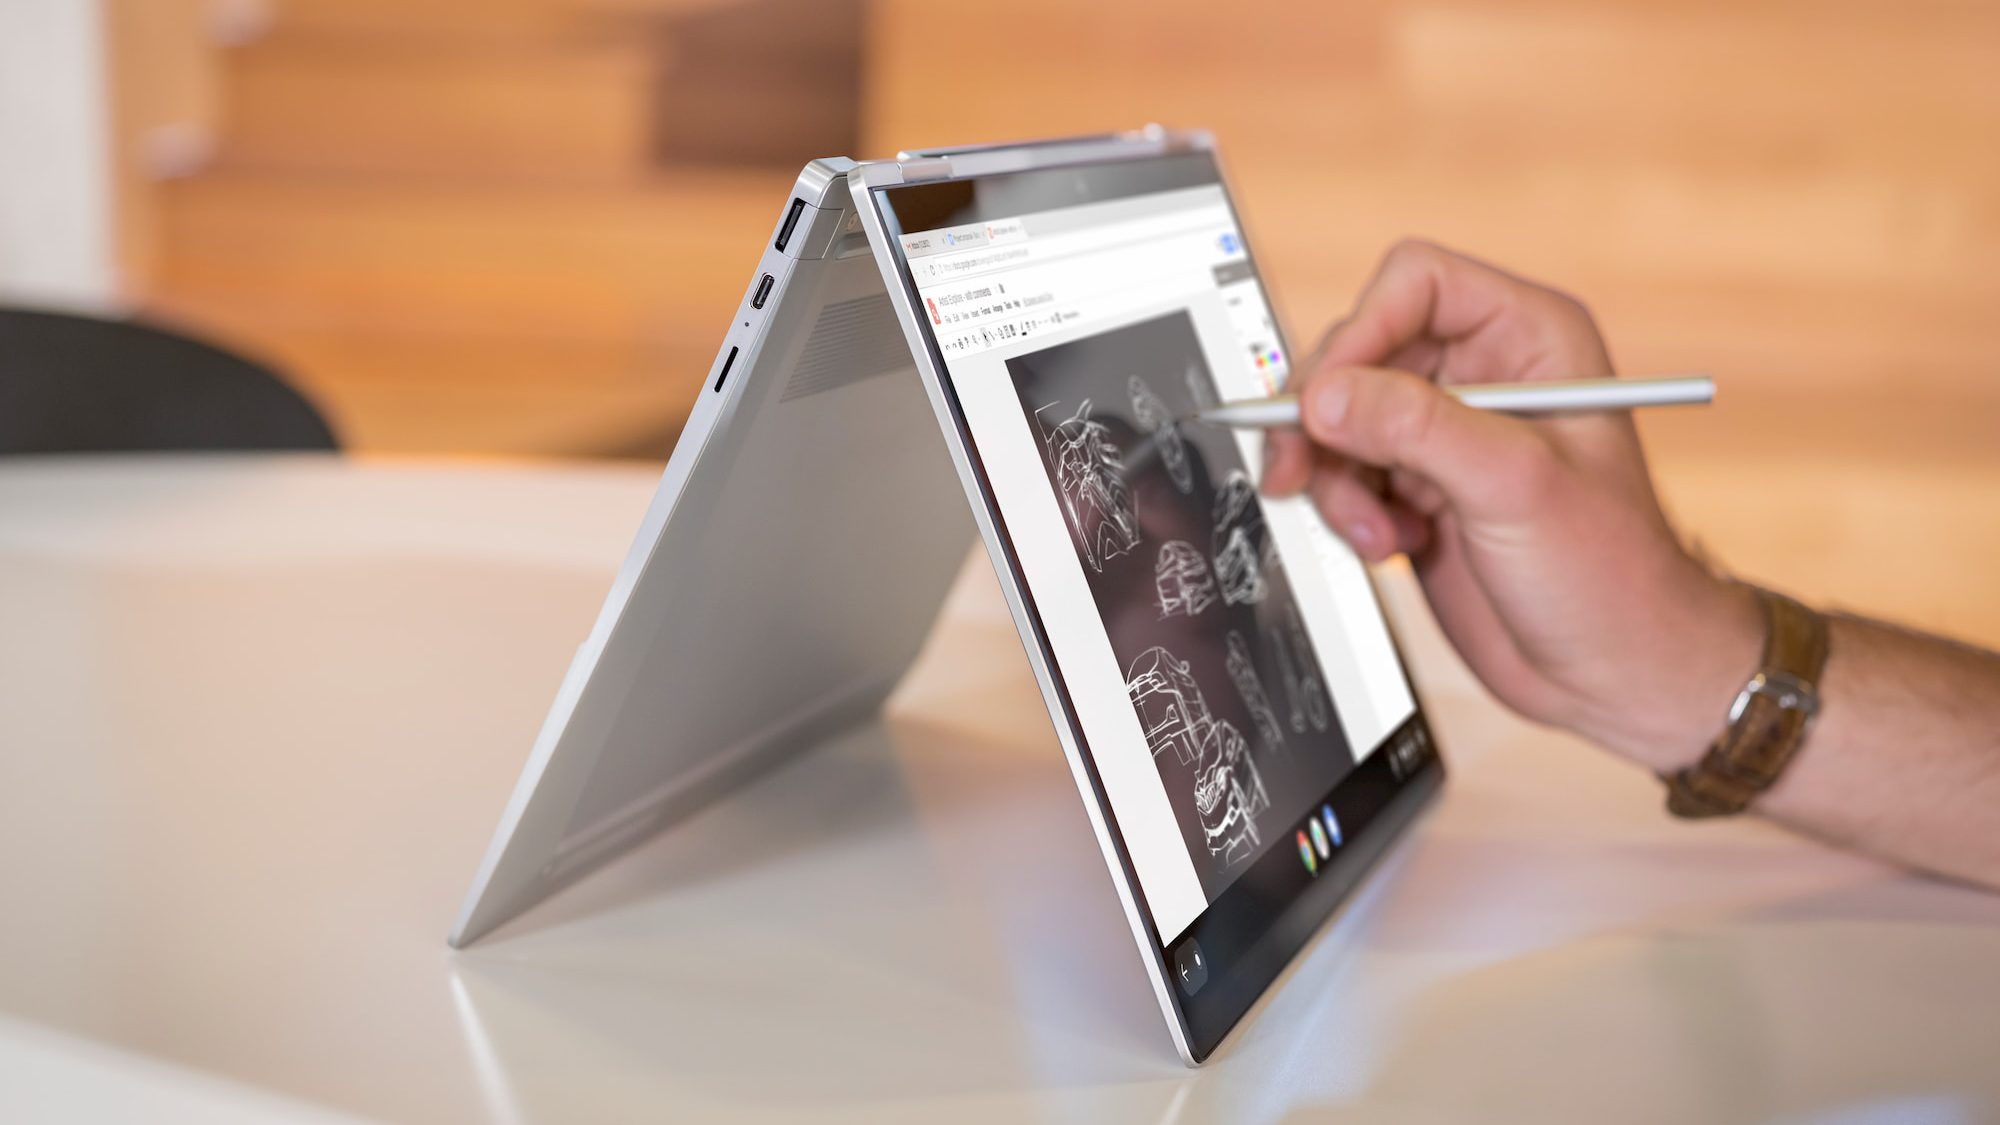 The beautiful HP Elite c1030 Chromebook is now up for pre-order with some caveats